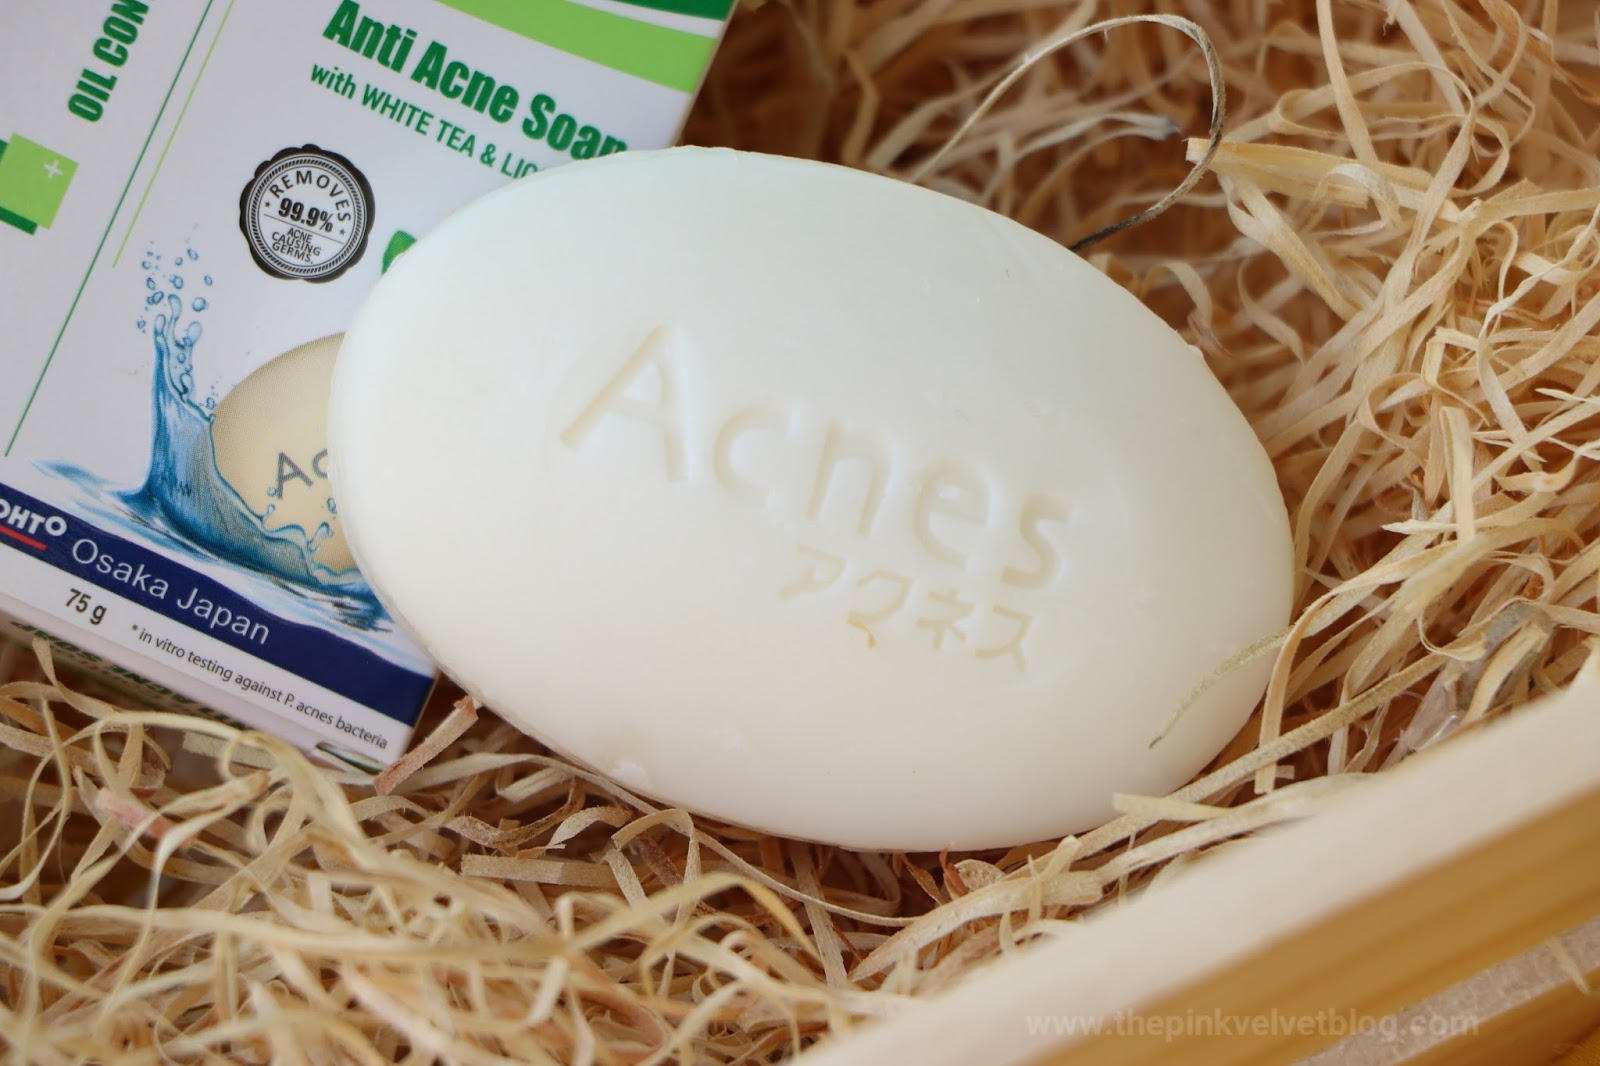 Rohto ACNES Oil-Control Anti-Acne Soap Review